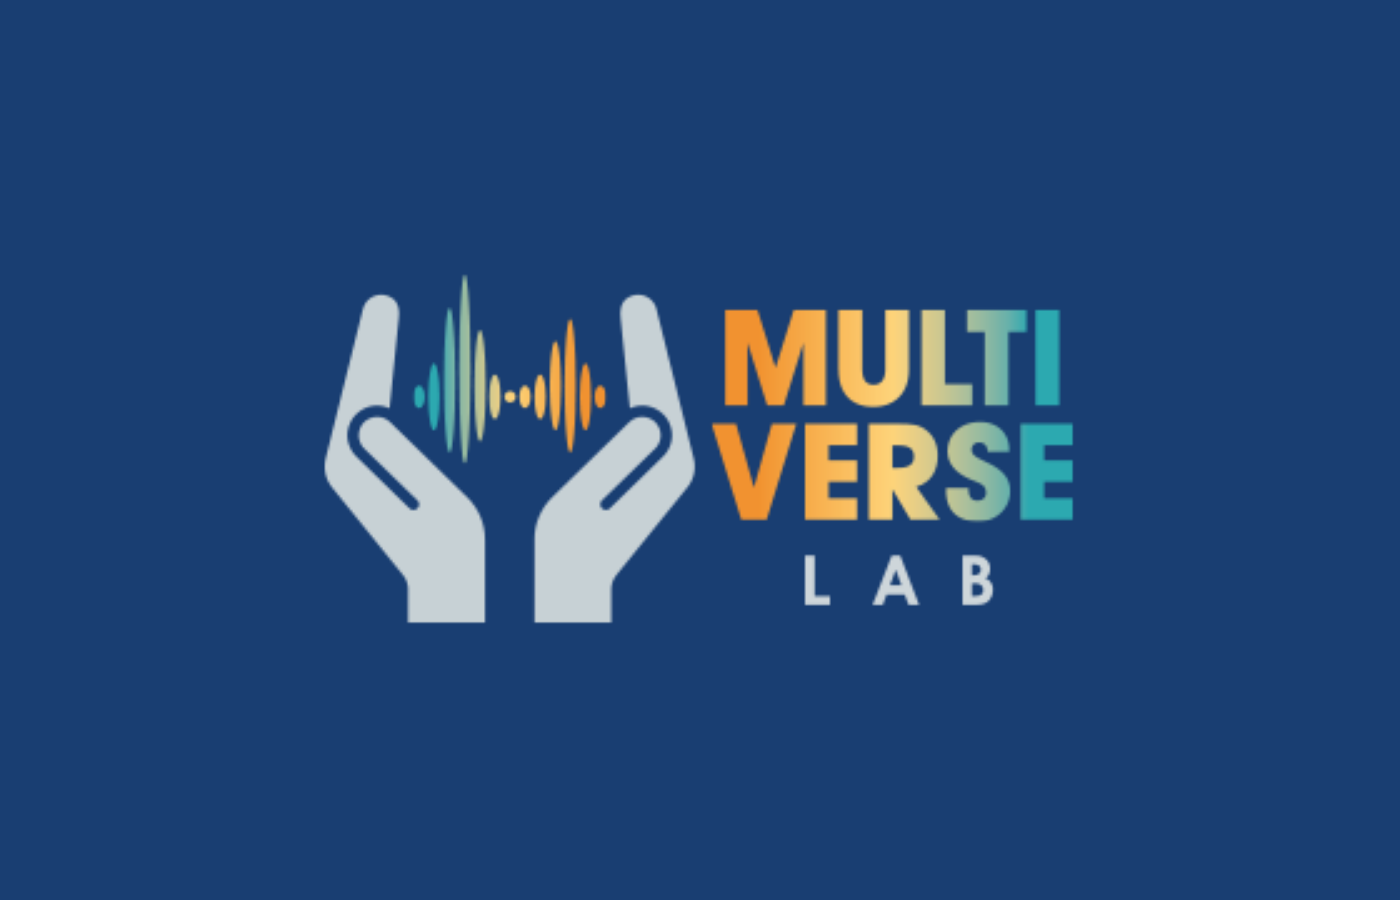 image of multiverse lab logo